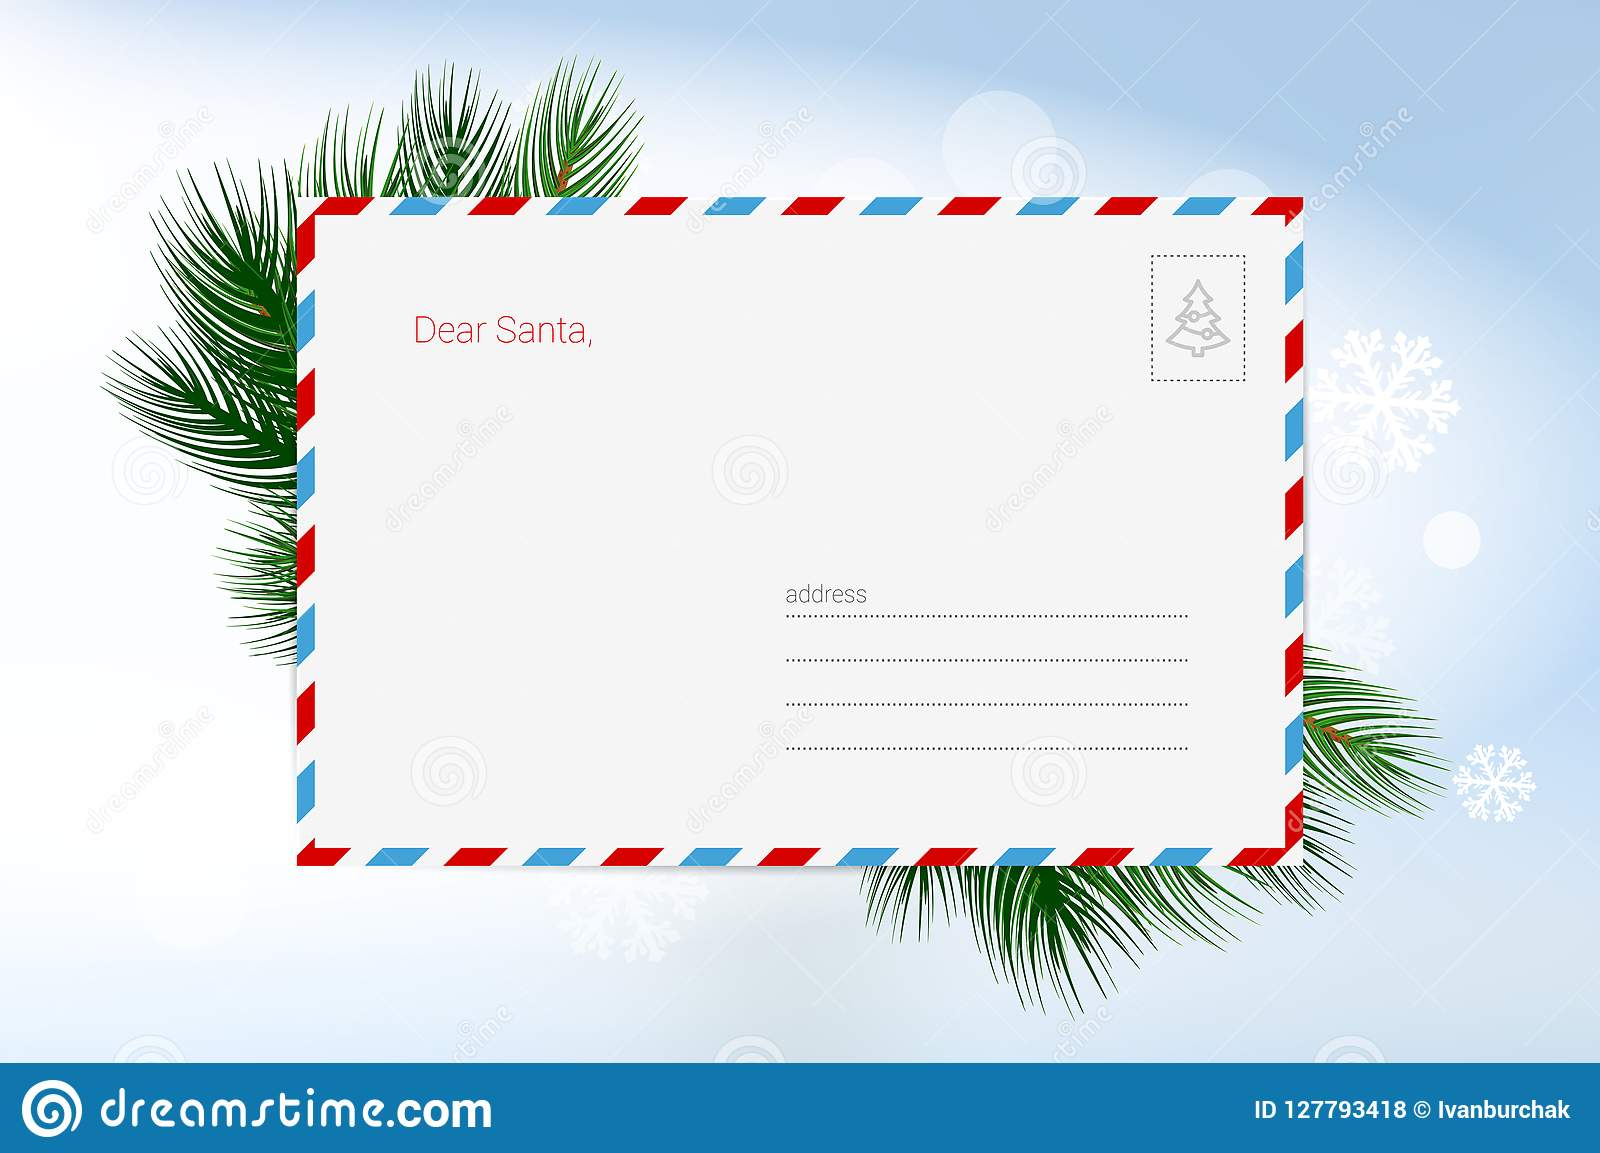 vector christmas greeting card template merry christmas and happy new